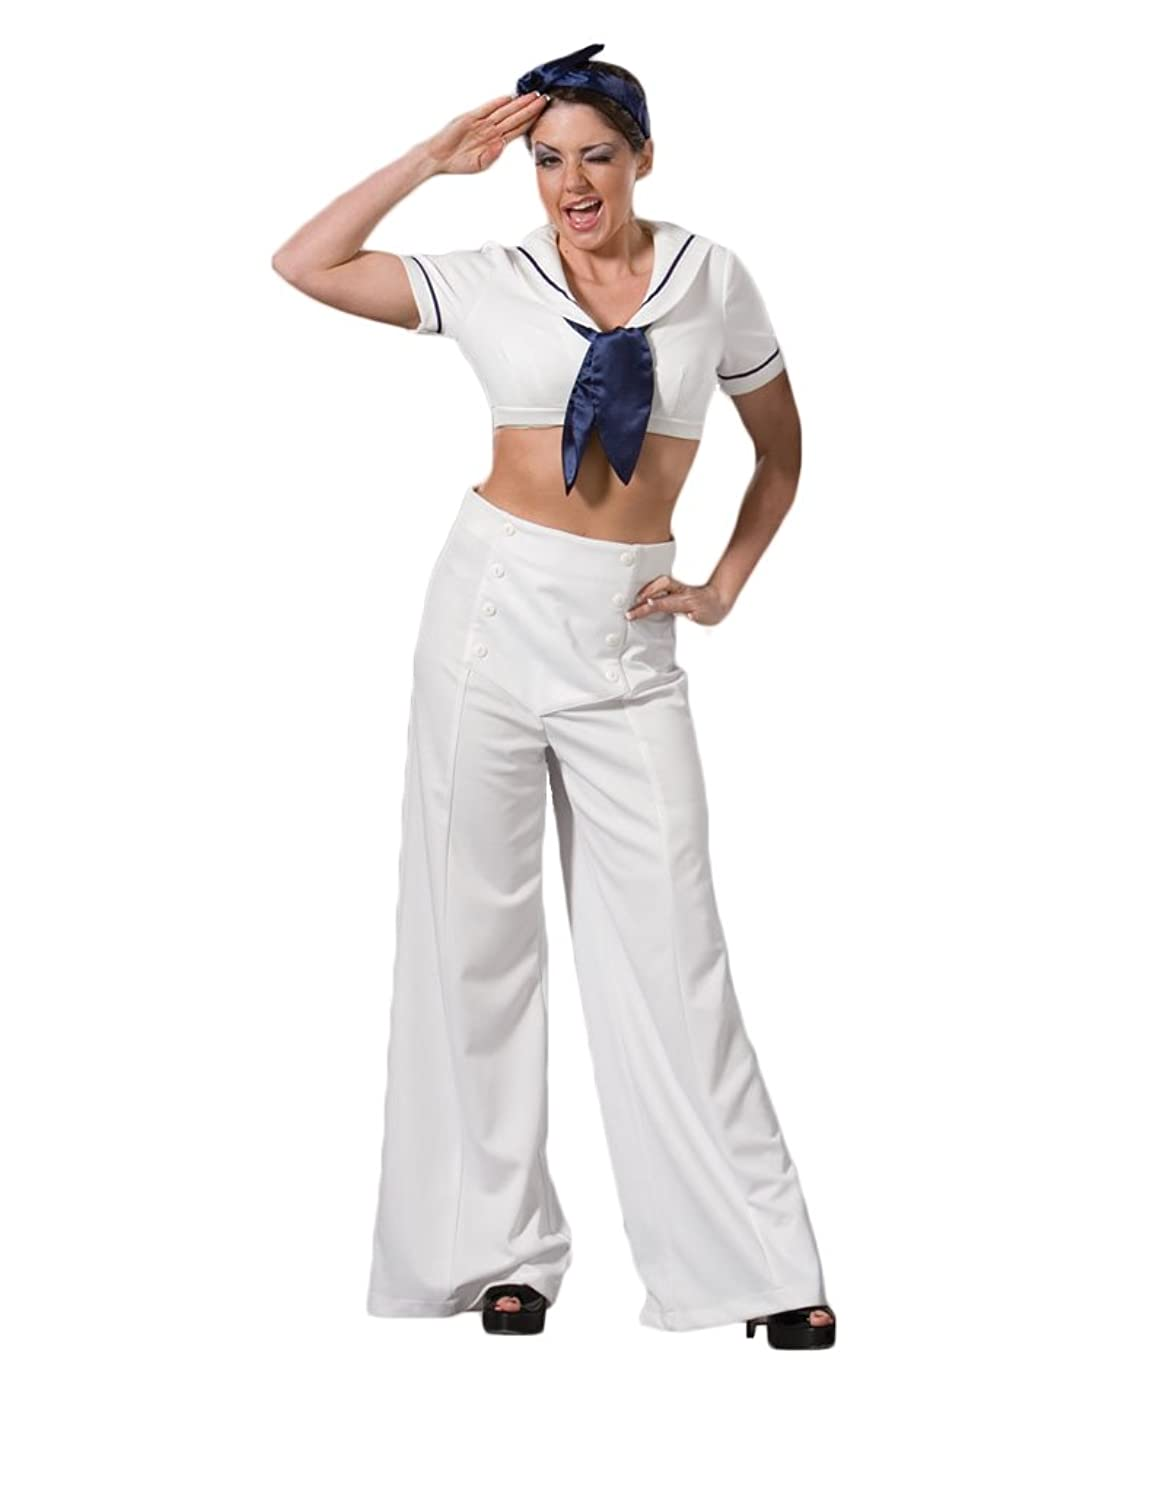 1940s Style Pants & Overalls- Wide Leg, High Waist Navy Sailor World War II Pin-Up Girl Theater Costume $149.99 AT vintagedancer.com